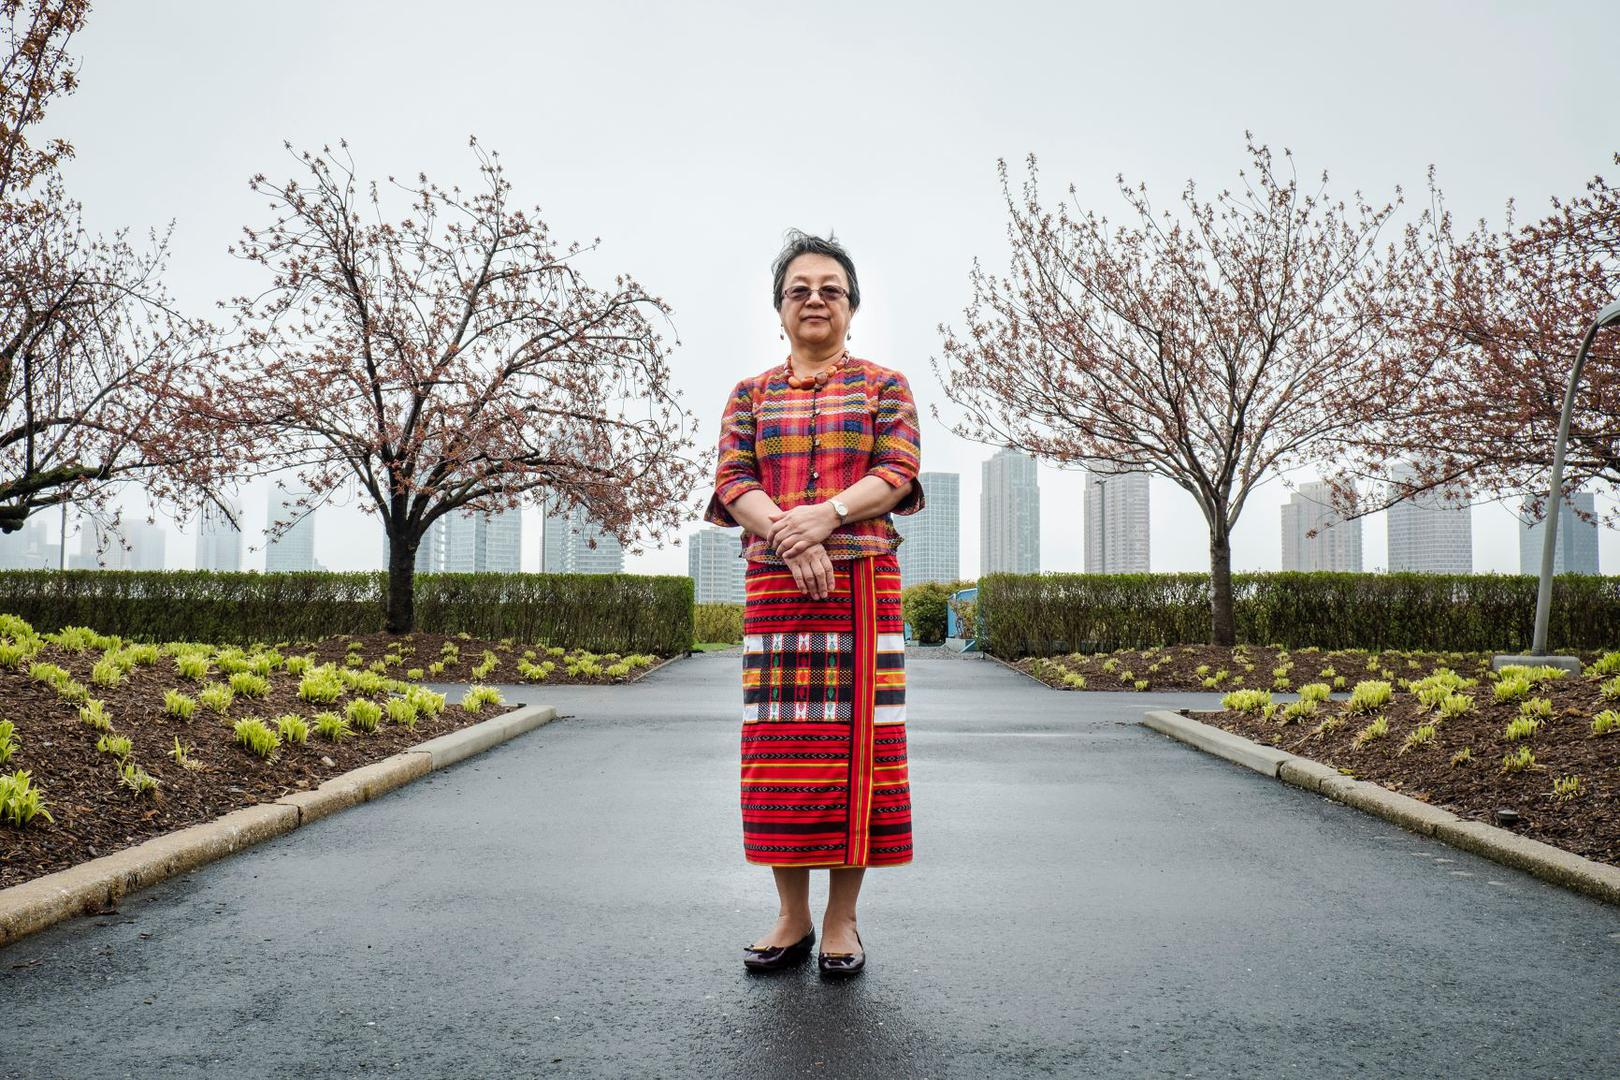 Victoria Tauli-Corpuz, the United Nations special rapporteur on the rights of indigenous peoples, at UN headquarters in New York in April 2018.